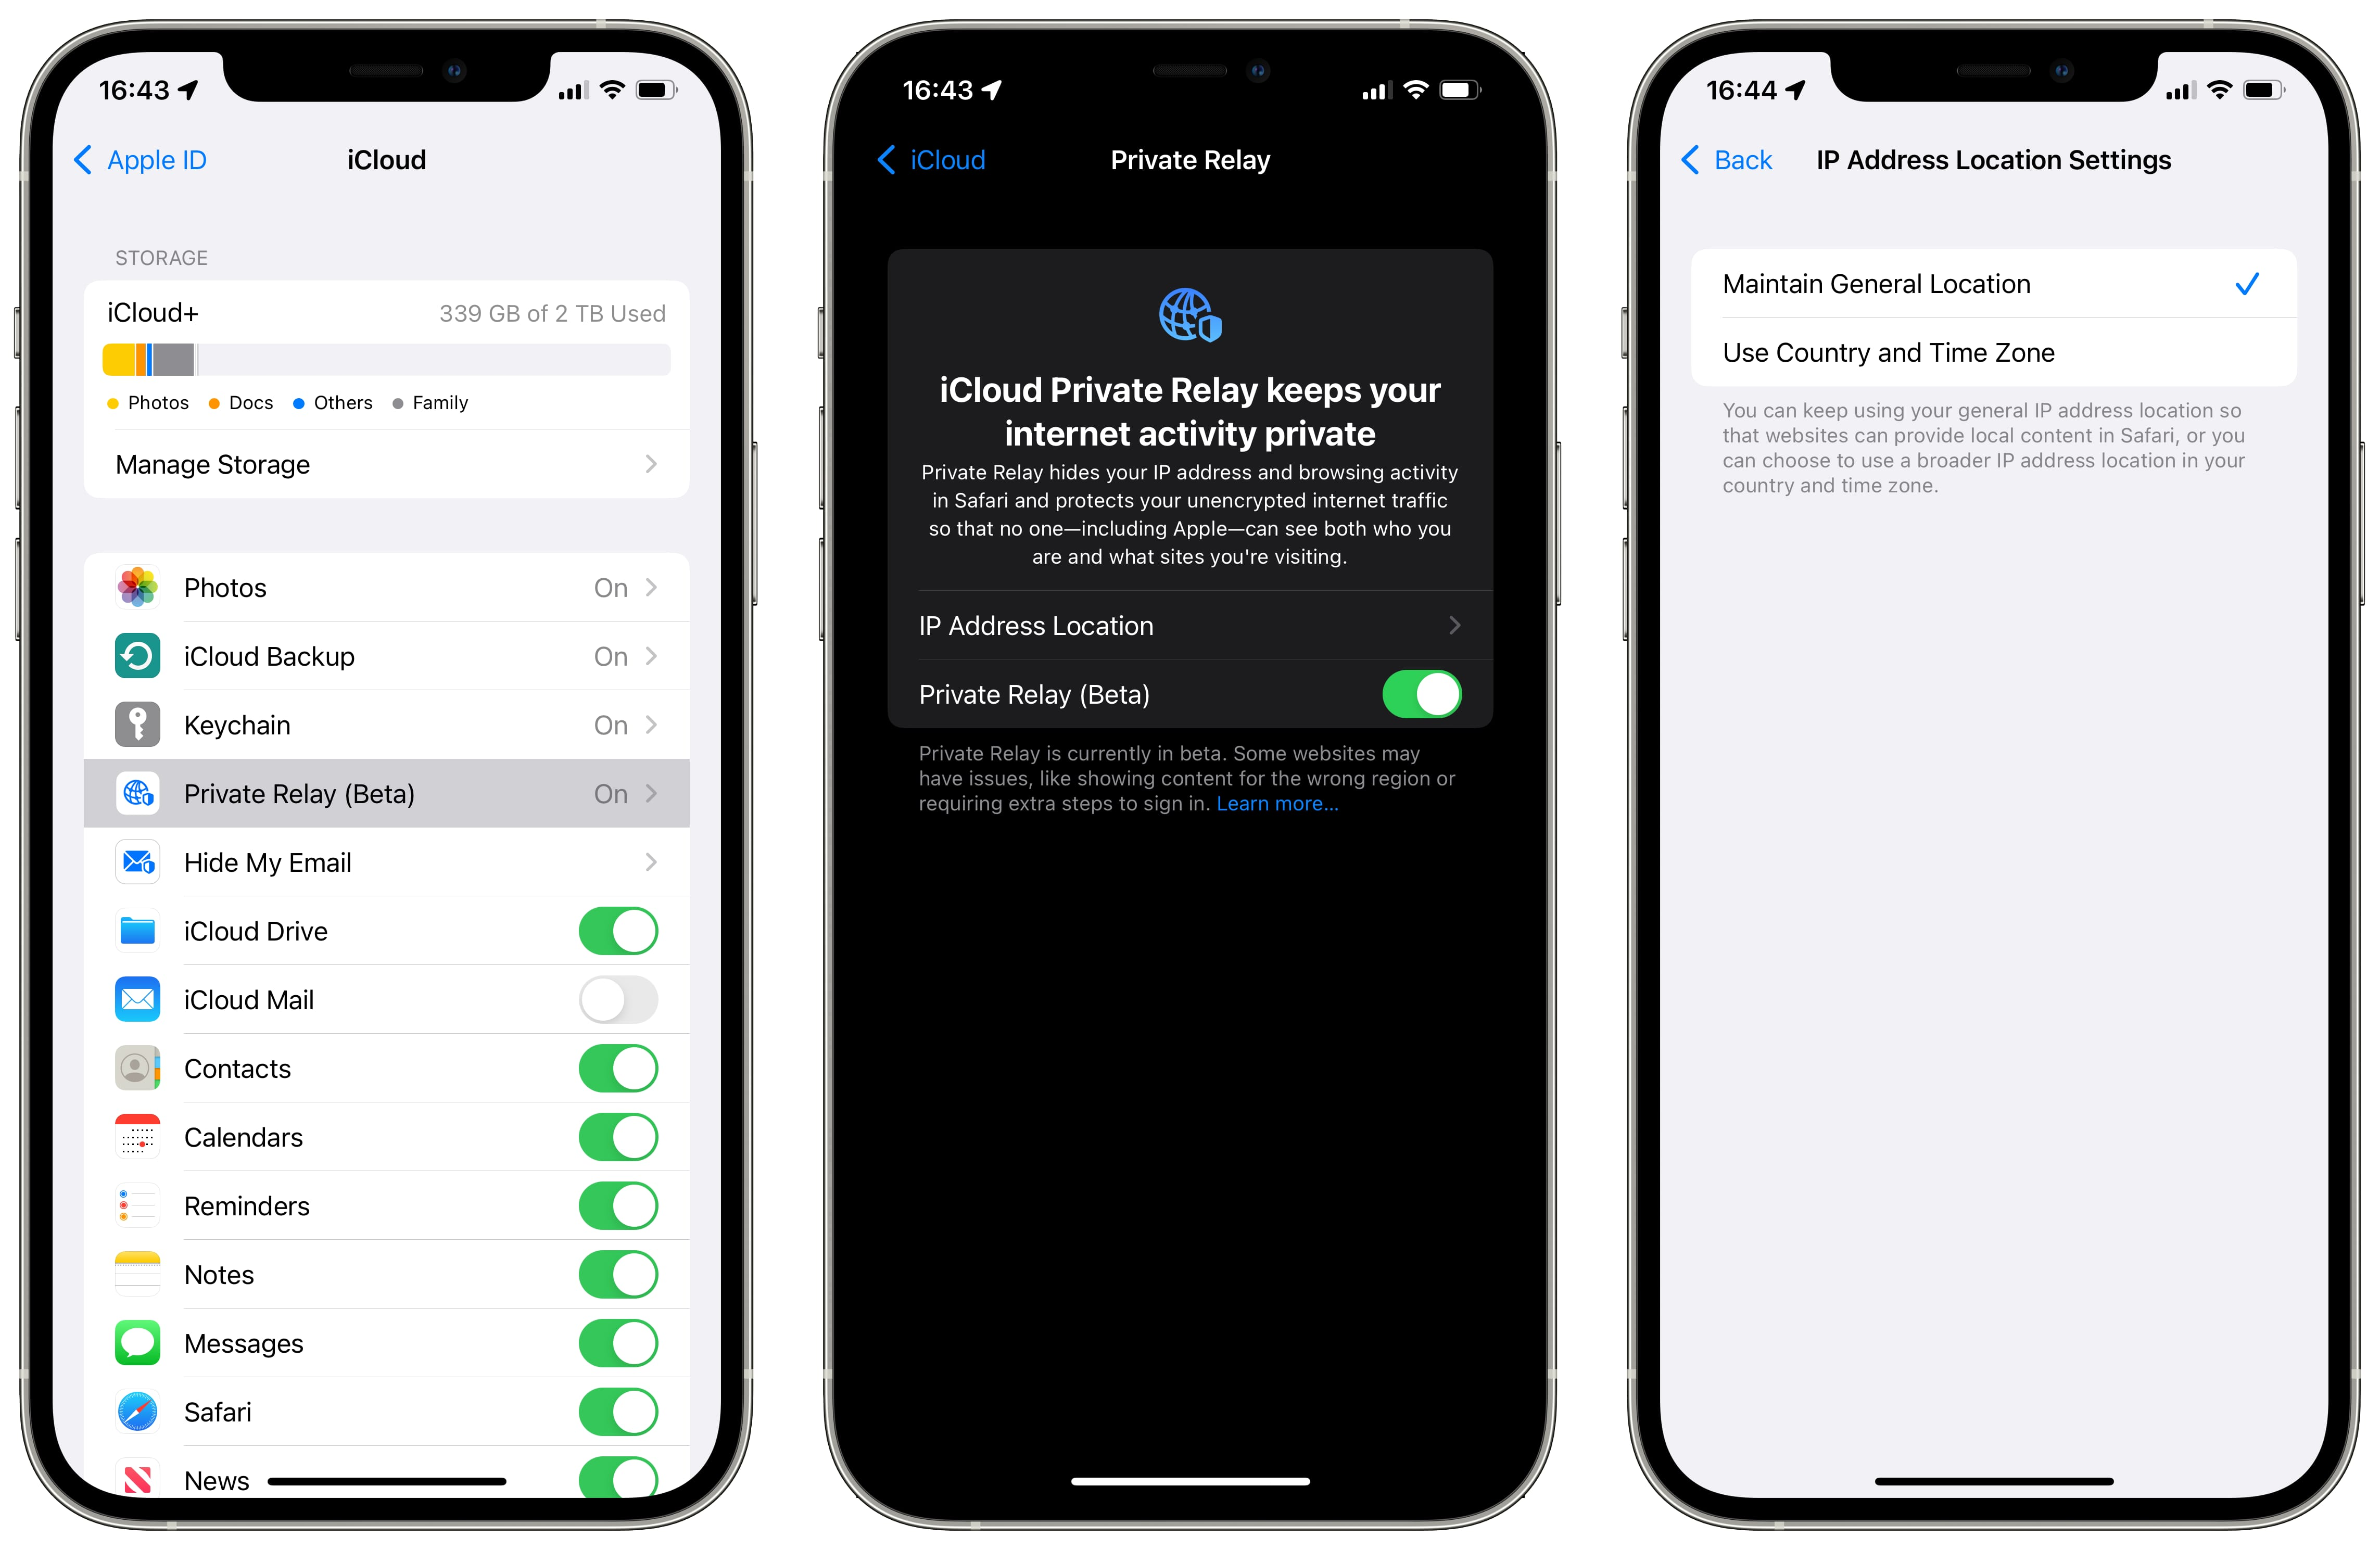 Three iPhone screenshots showing the iCloud Private Relay entry in iCloud settings (left), a splash screen for the feature (middle) and the IP address location settings (right)